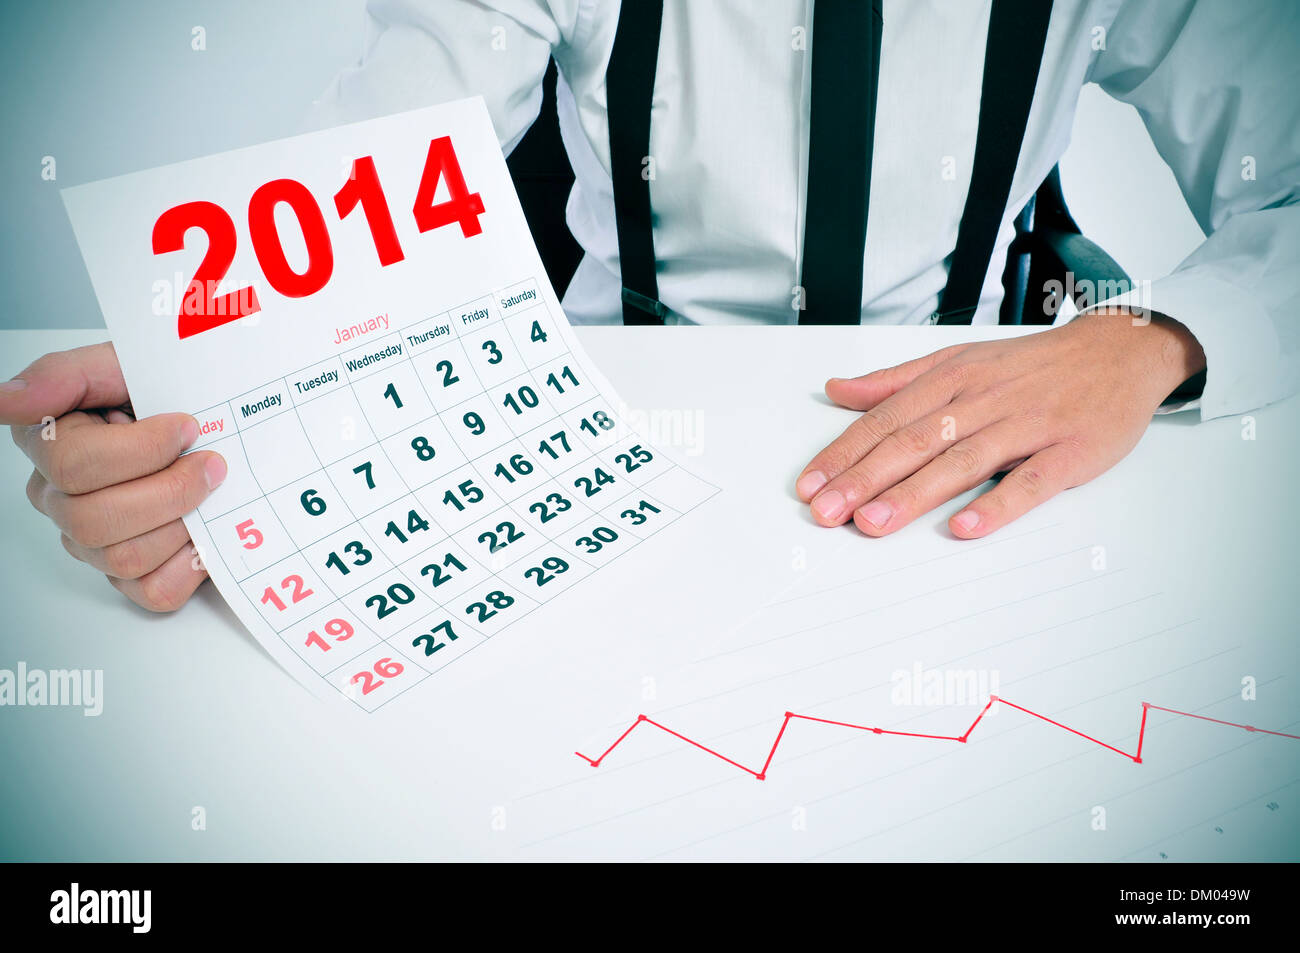 businessman sitting in a desk with a chart and showing a 2014 calendar Stock Photo